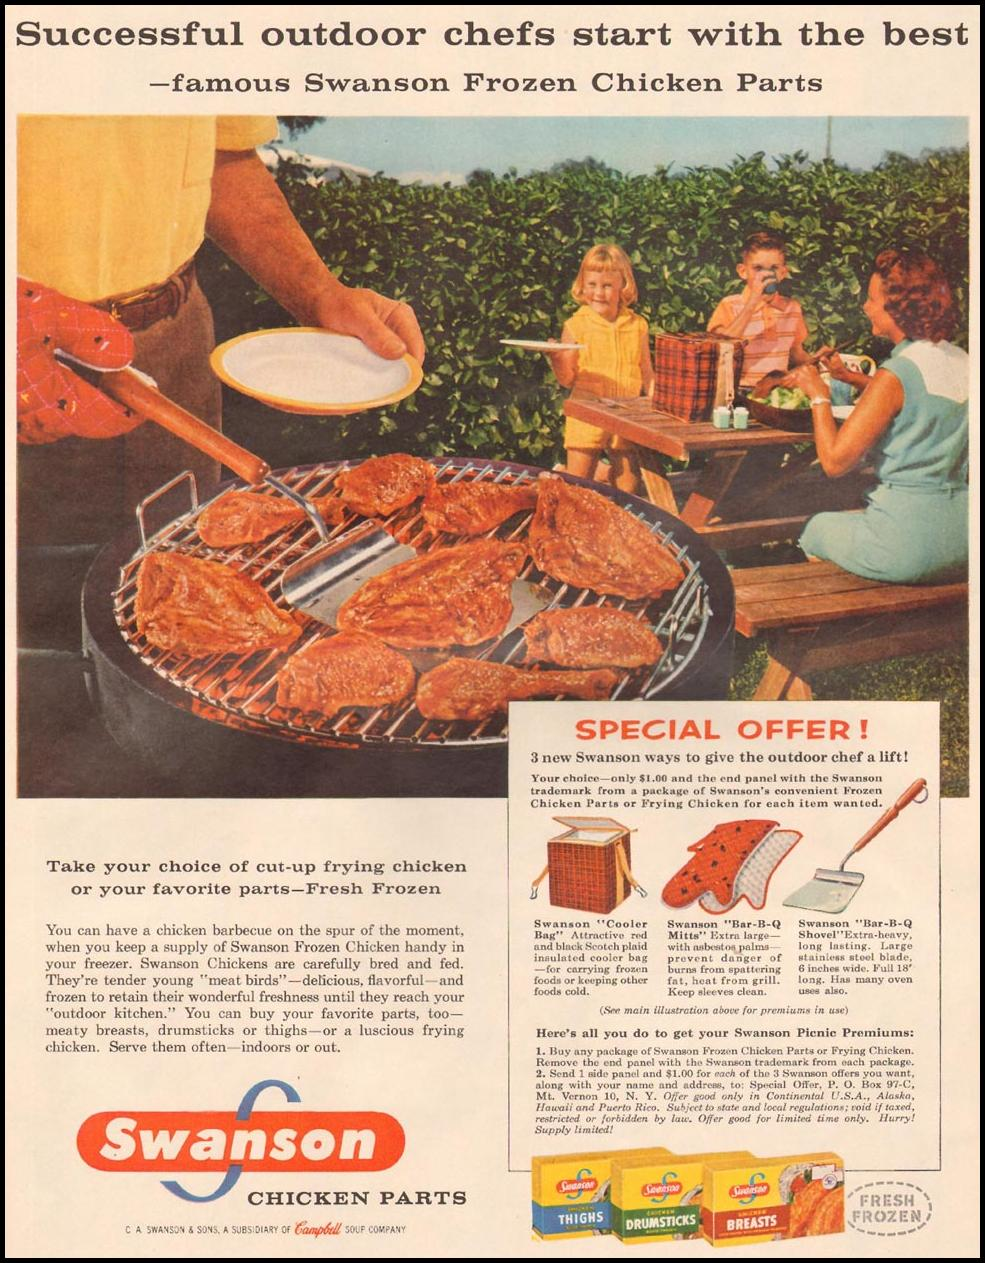 SWANSON FROZEN CHICKEN PARTS LIFE 09/09/1957 p. 37